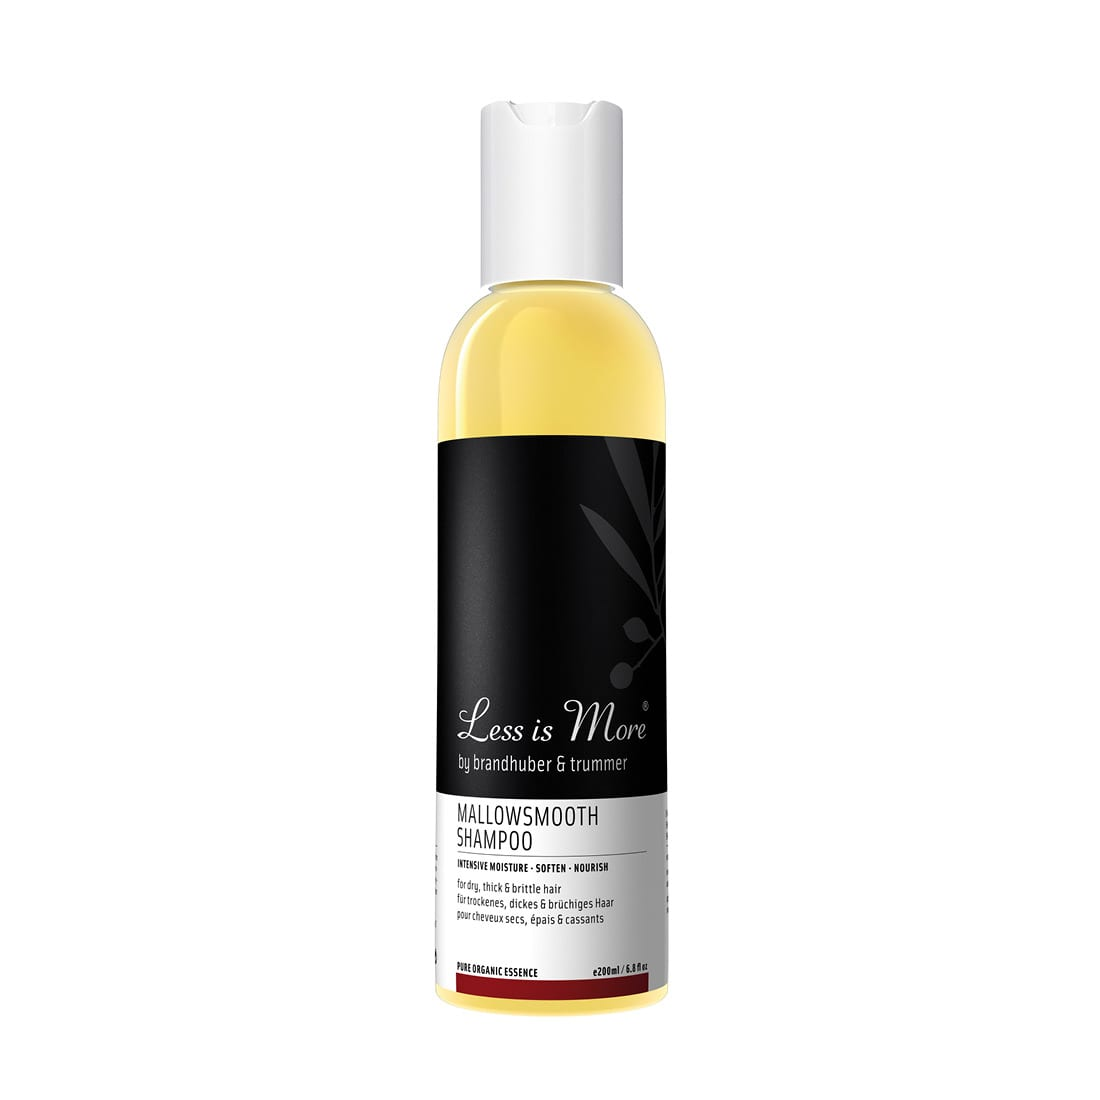 less-is-more-_mallowsmooth-shampoo_200ml